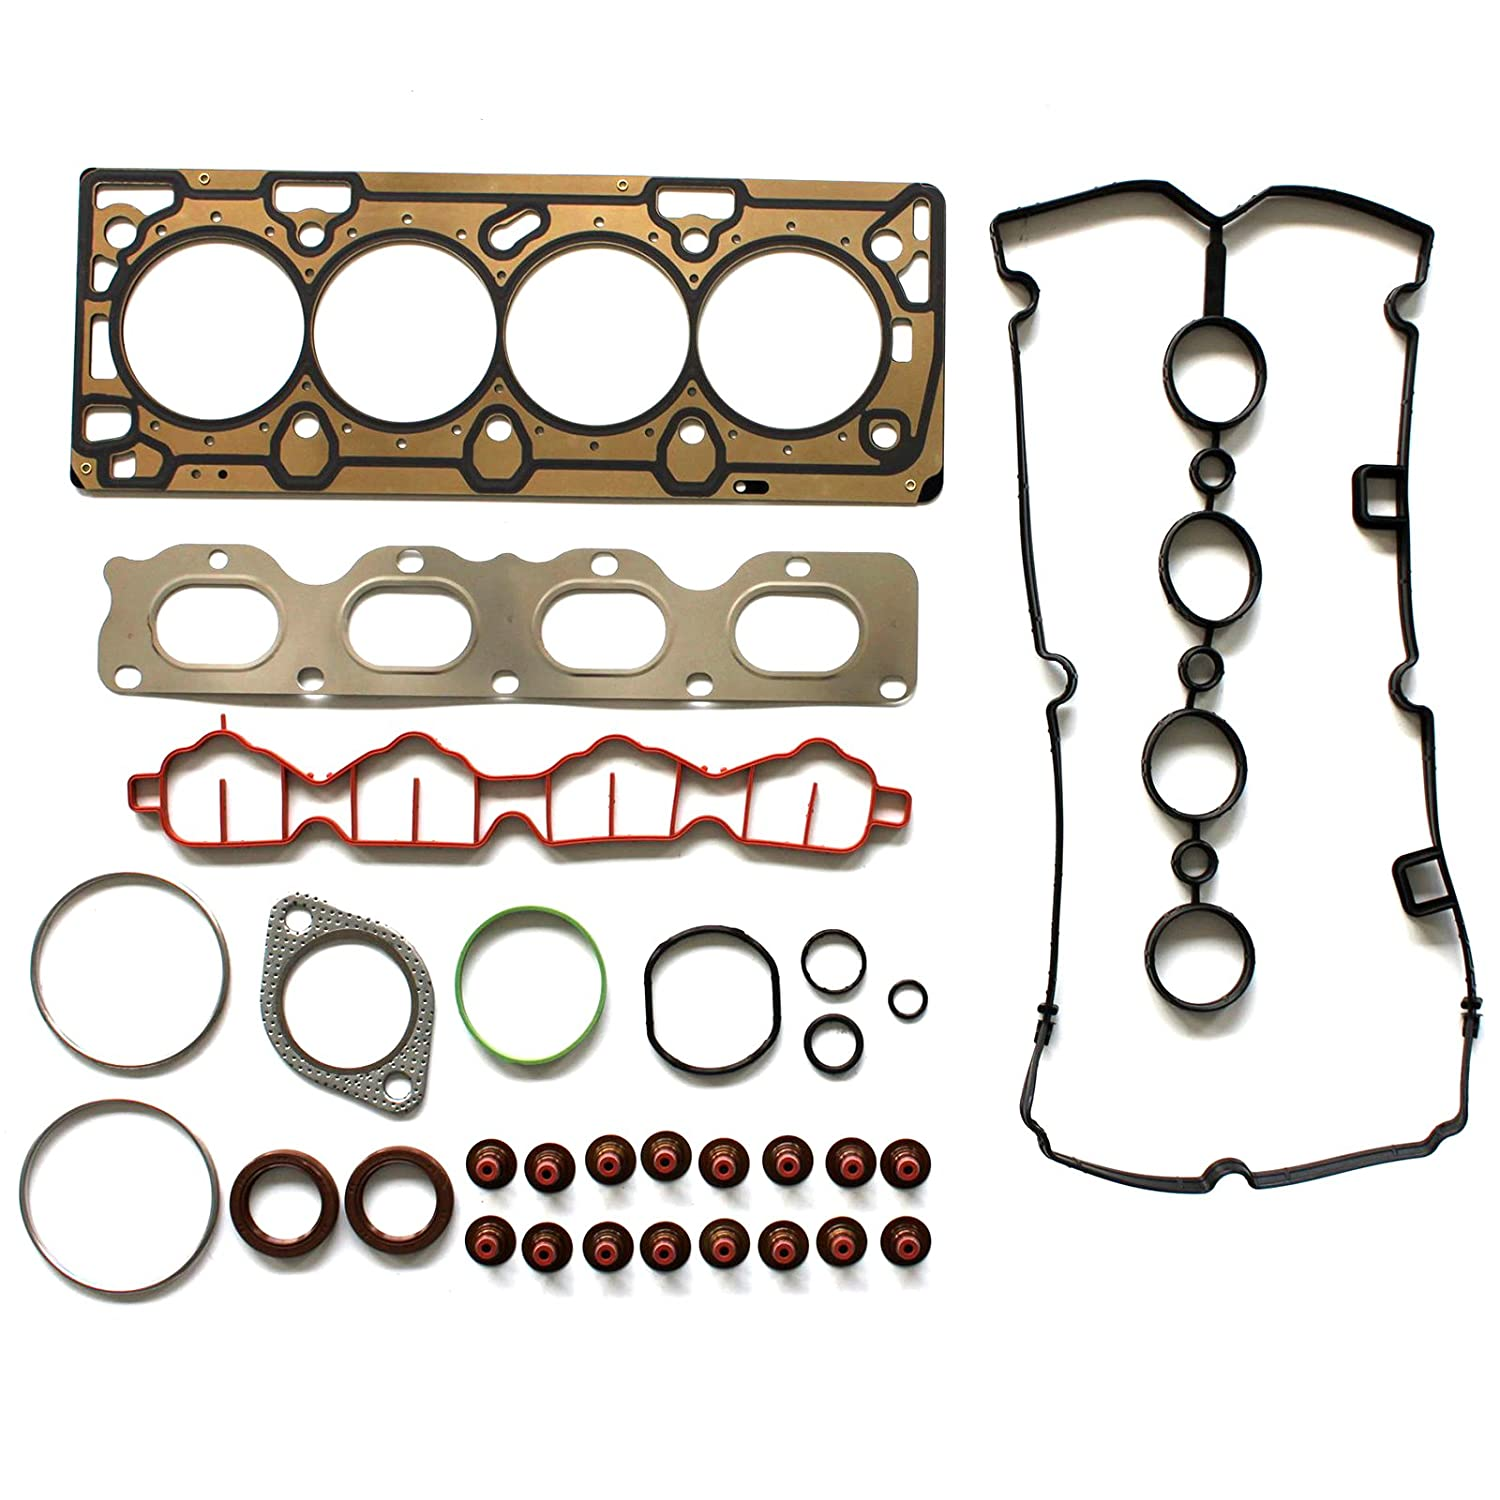 Eccpp Compatible Fit For Head Gasket Set 2009 2011 Belt Diagram Pontiac G3 Chevrolet Aveo Aveo5 16l Automotive Replacement Engine Gaskets Kit